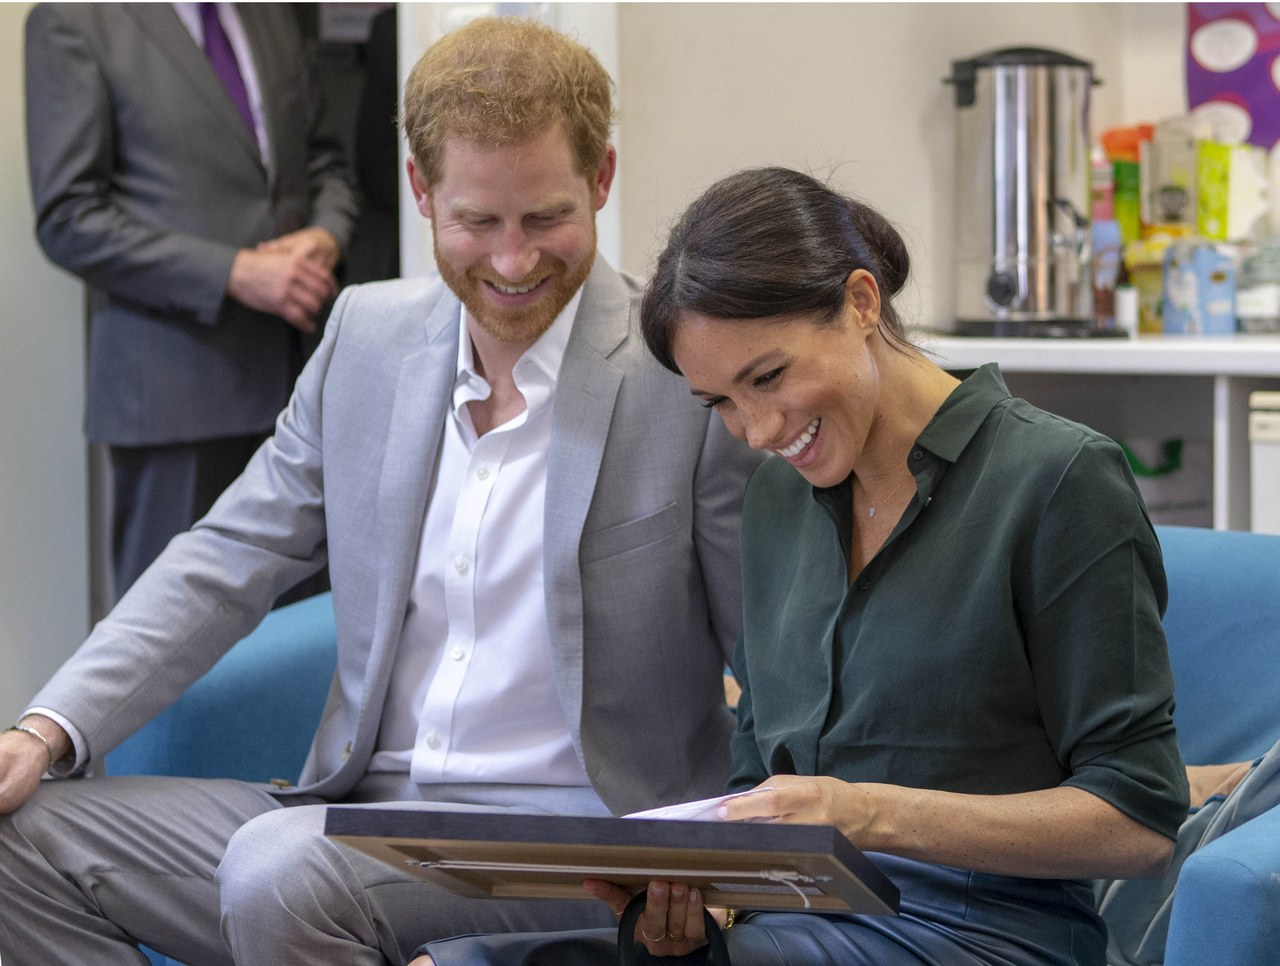 Meghan Markle Got a Drawing That Made Her Laugh Out Loud 3